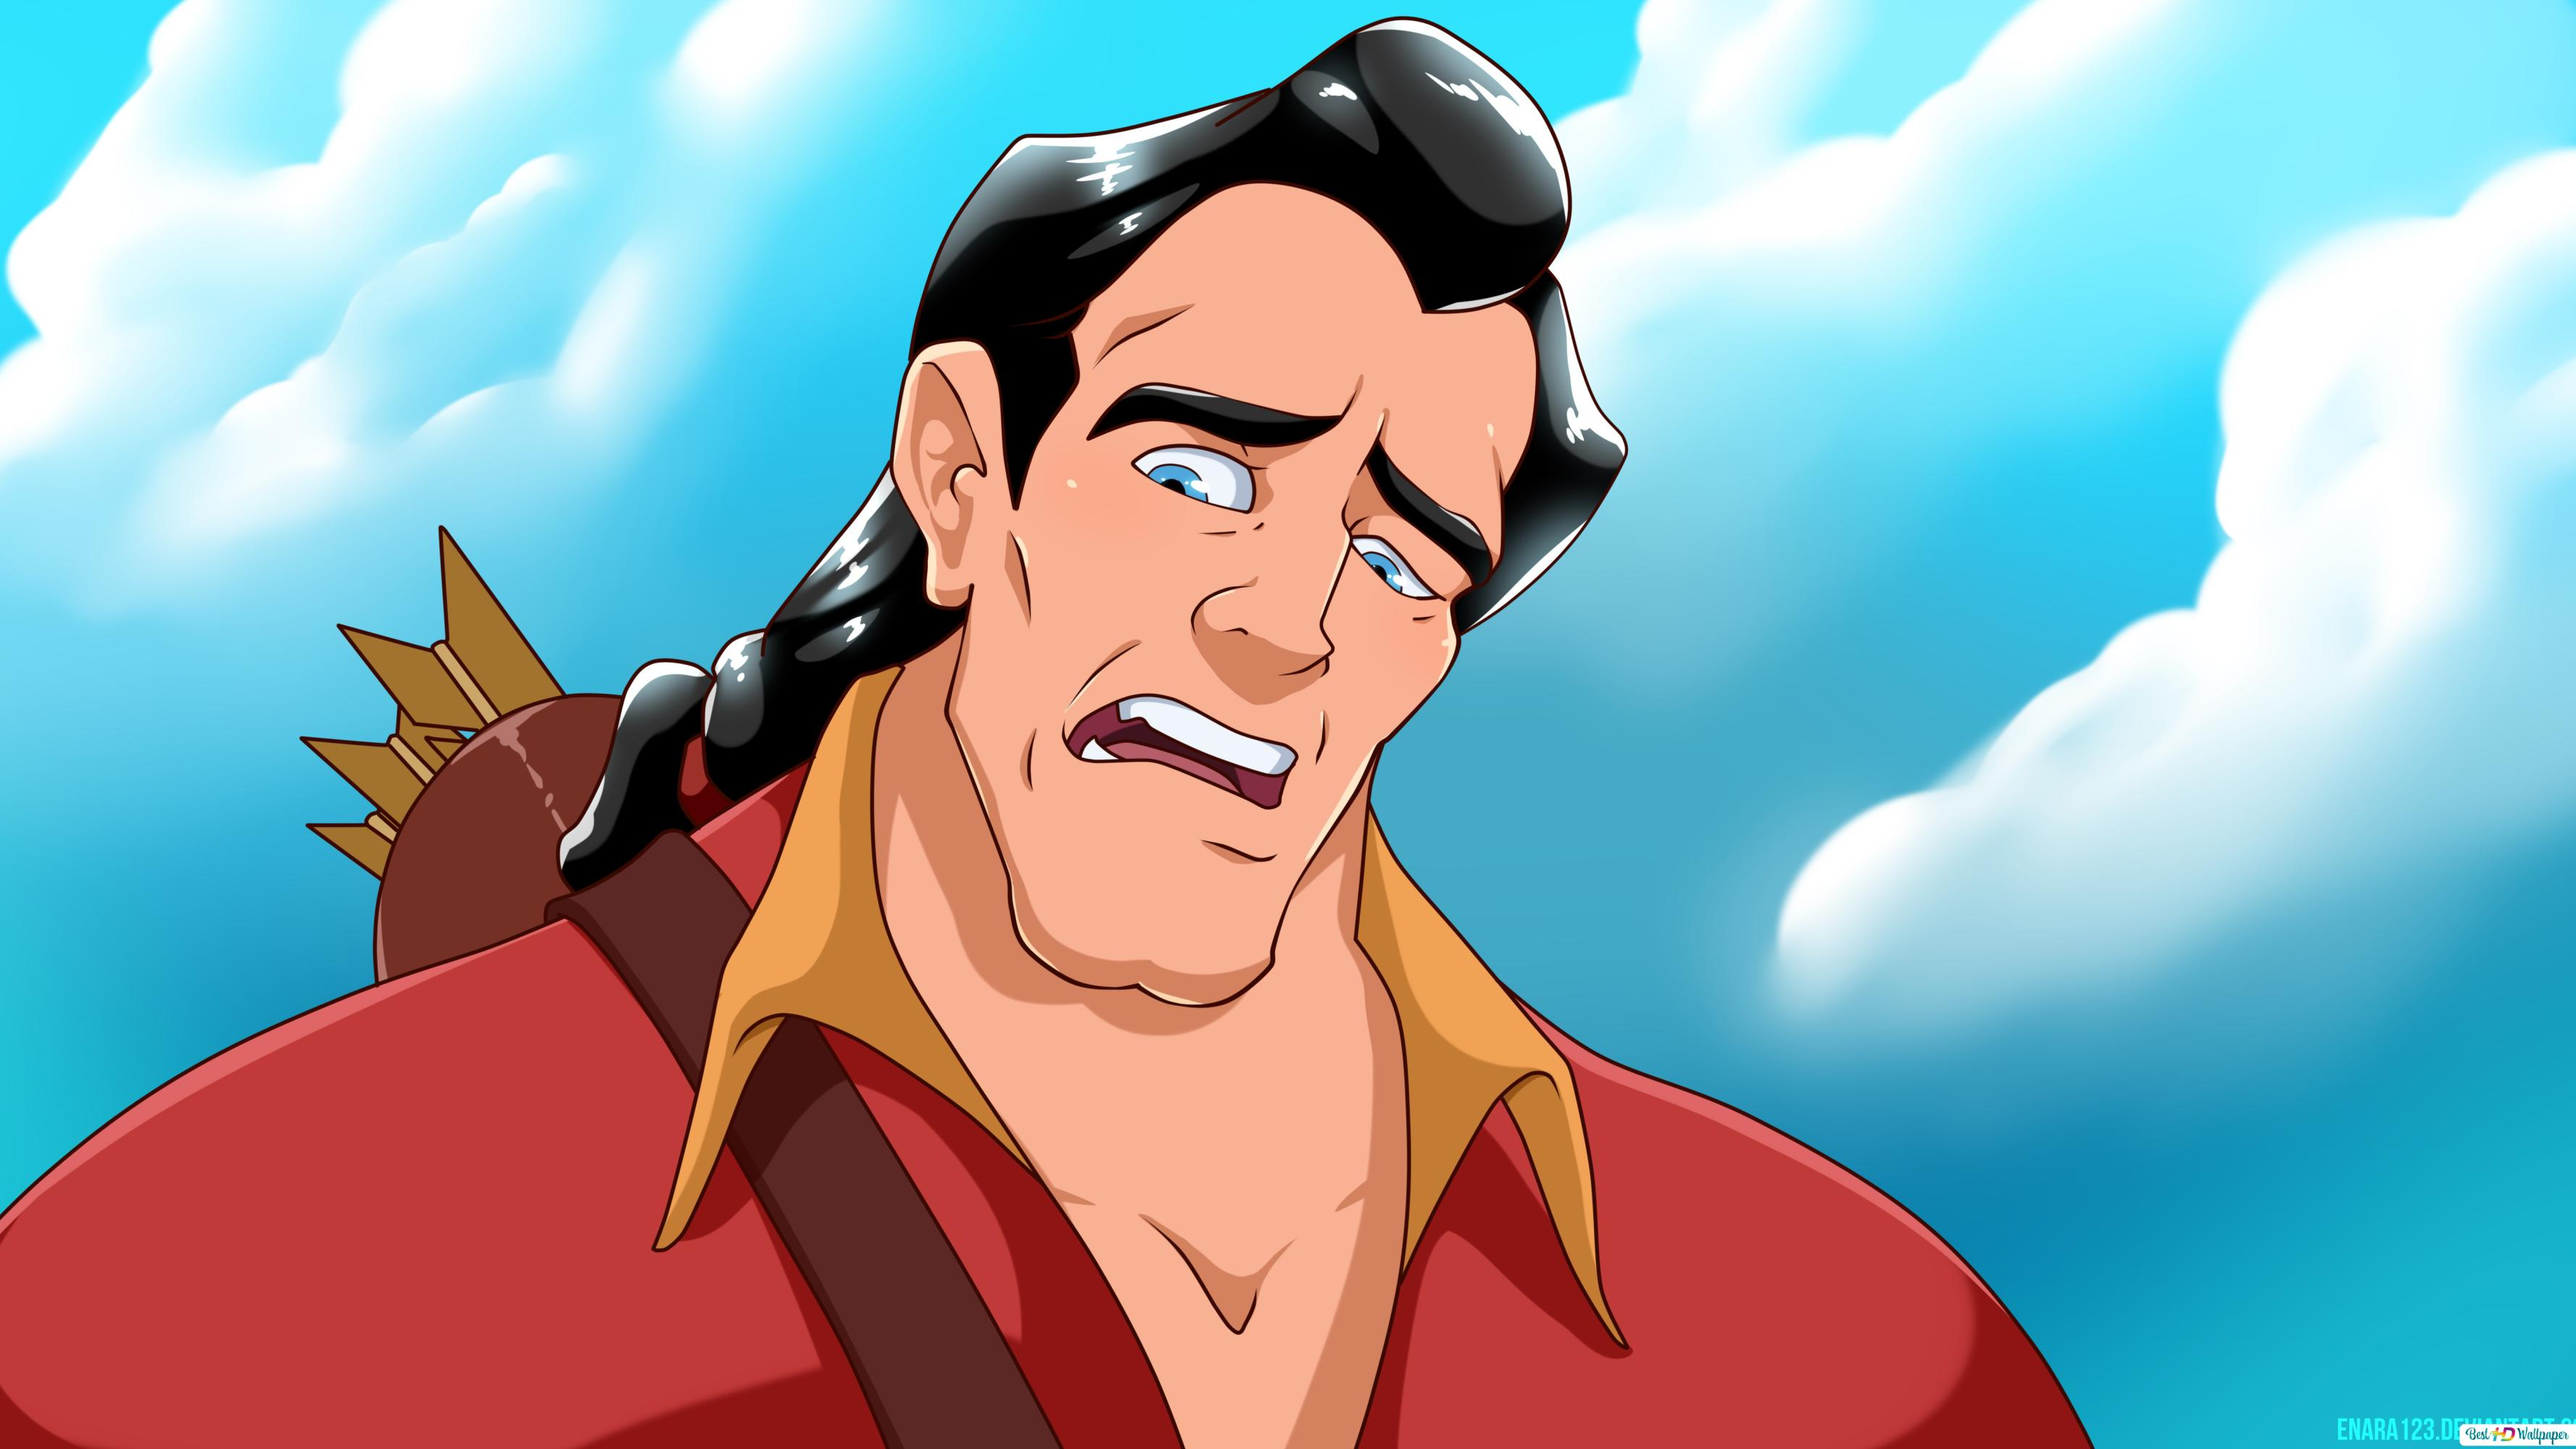 Beauty And The Beast 1991 Gaston Hd Wallpaper Download